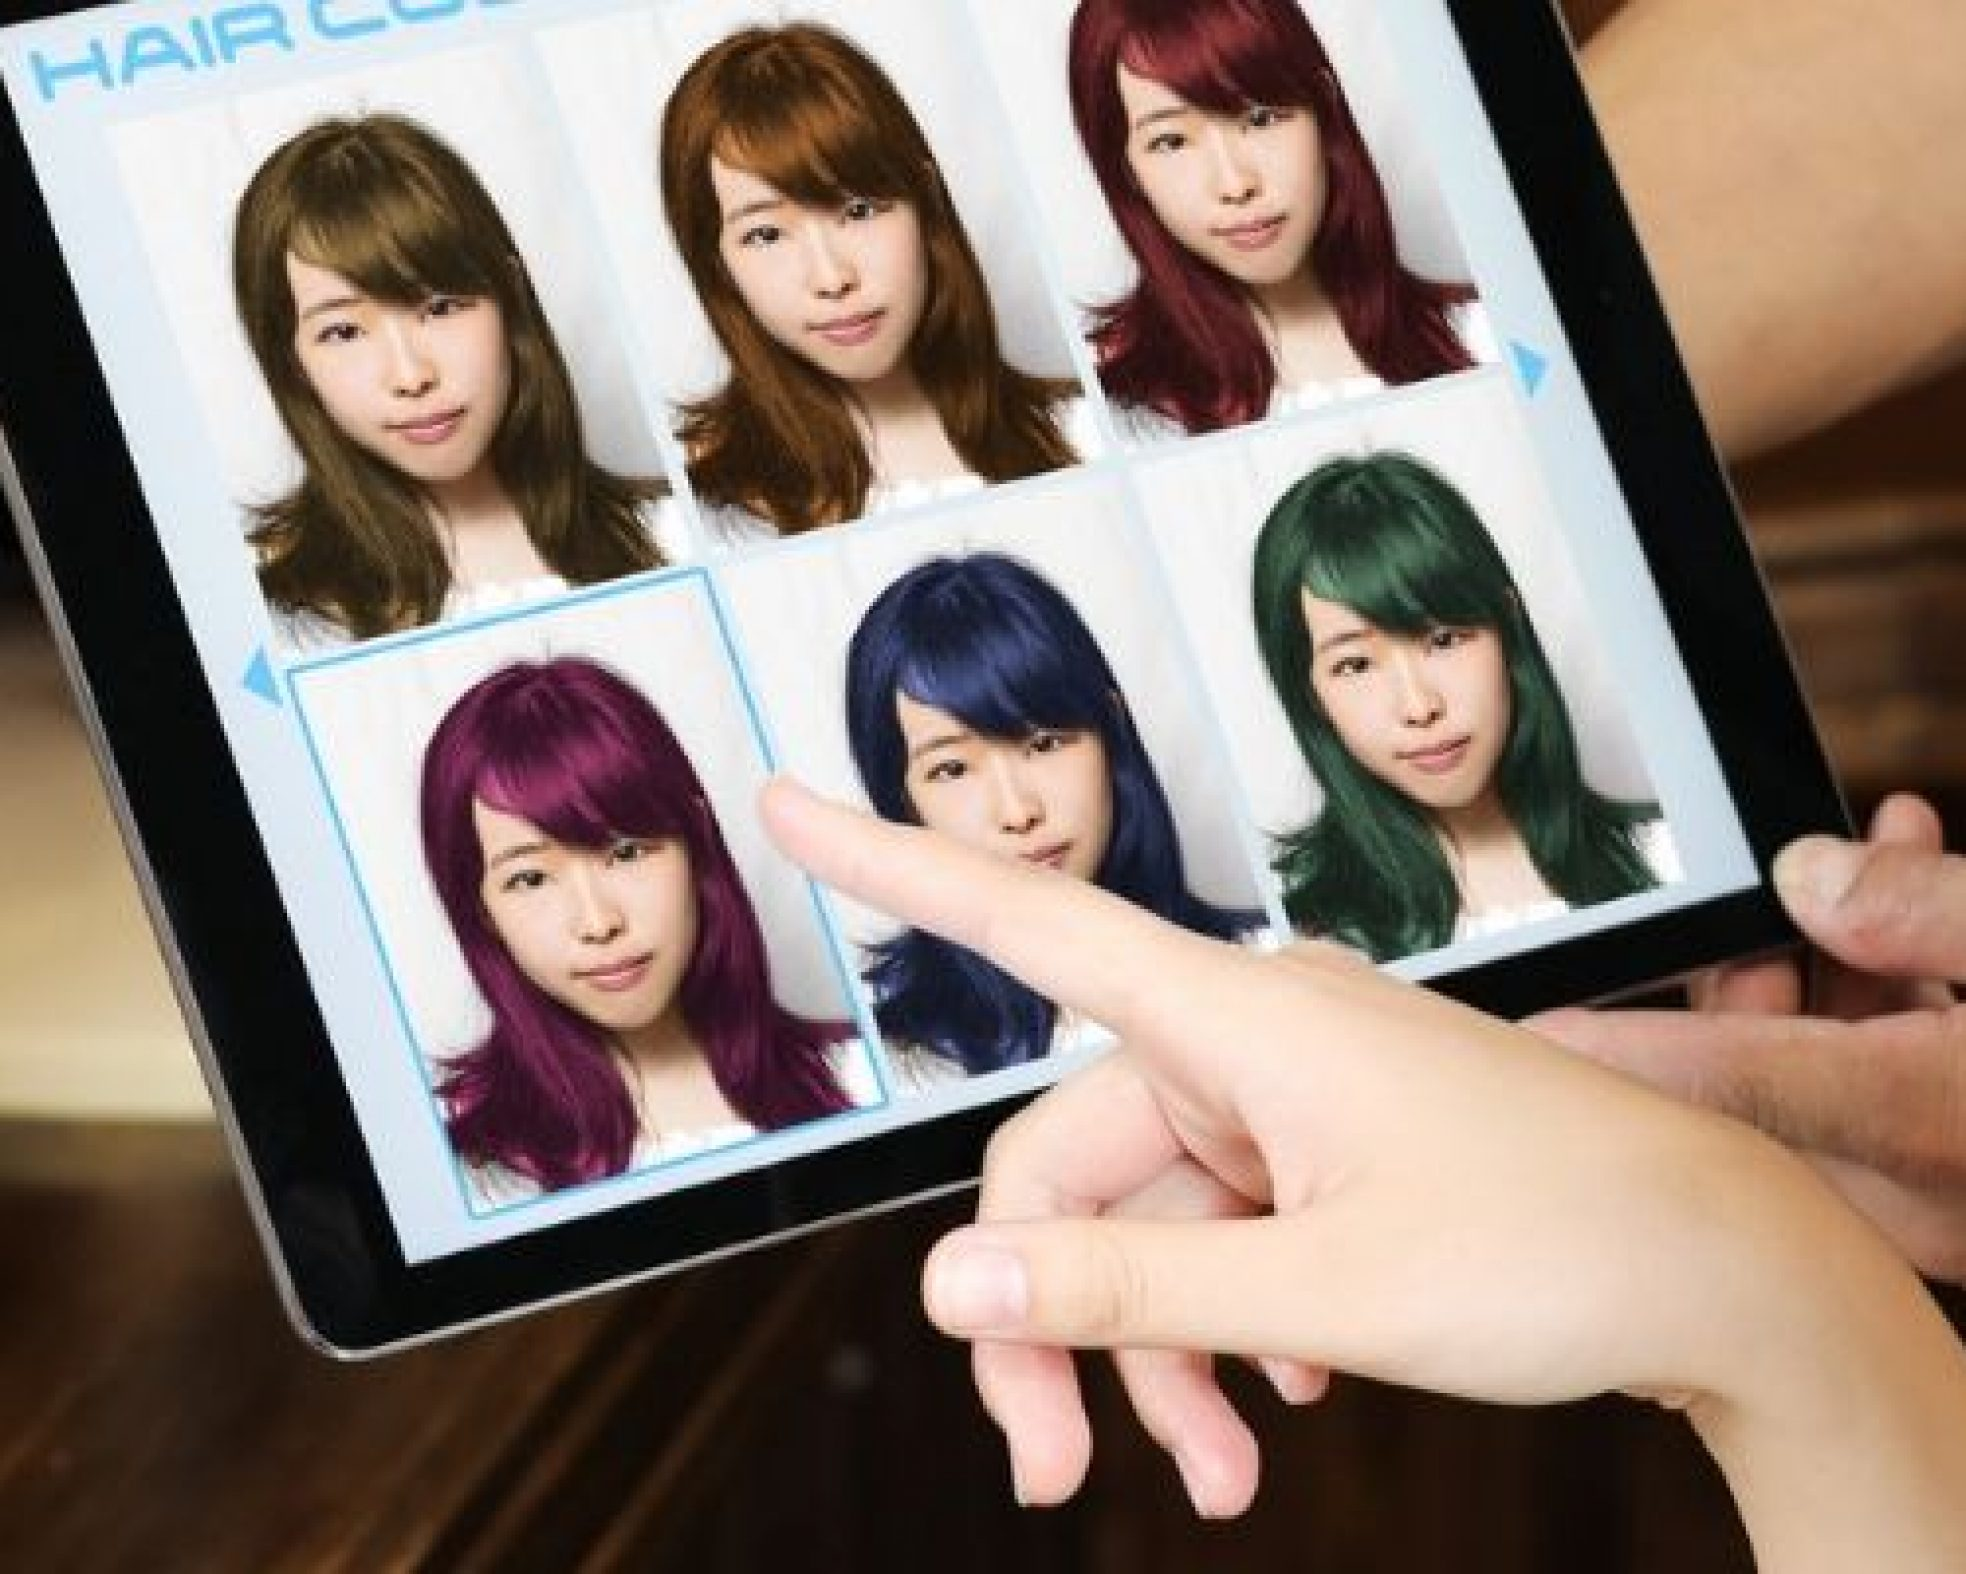 Hairdressing Apps